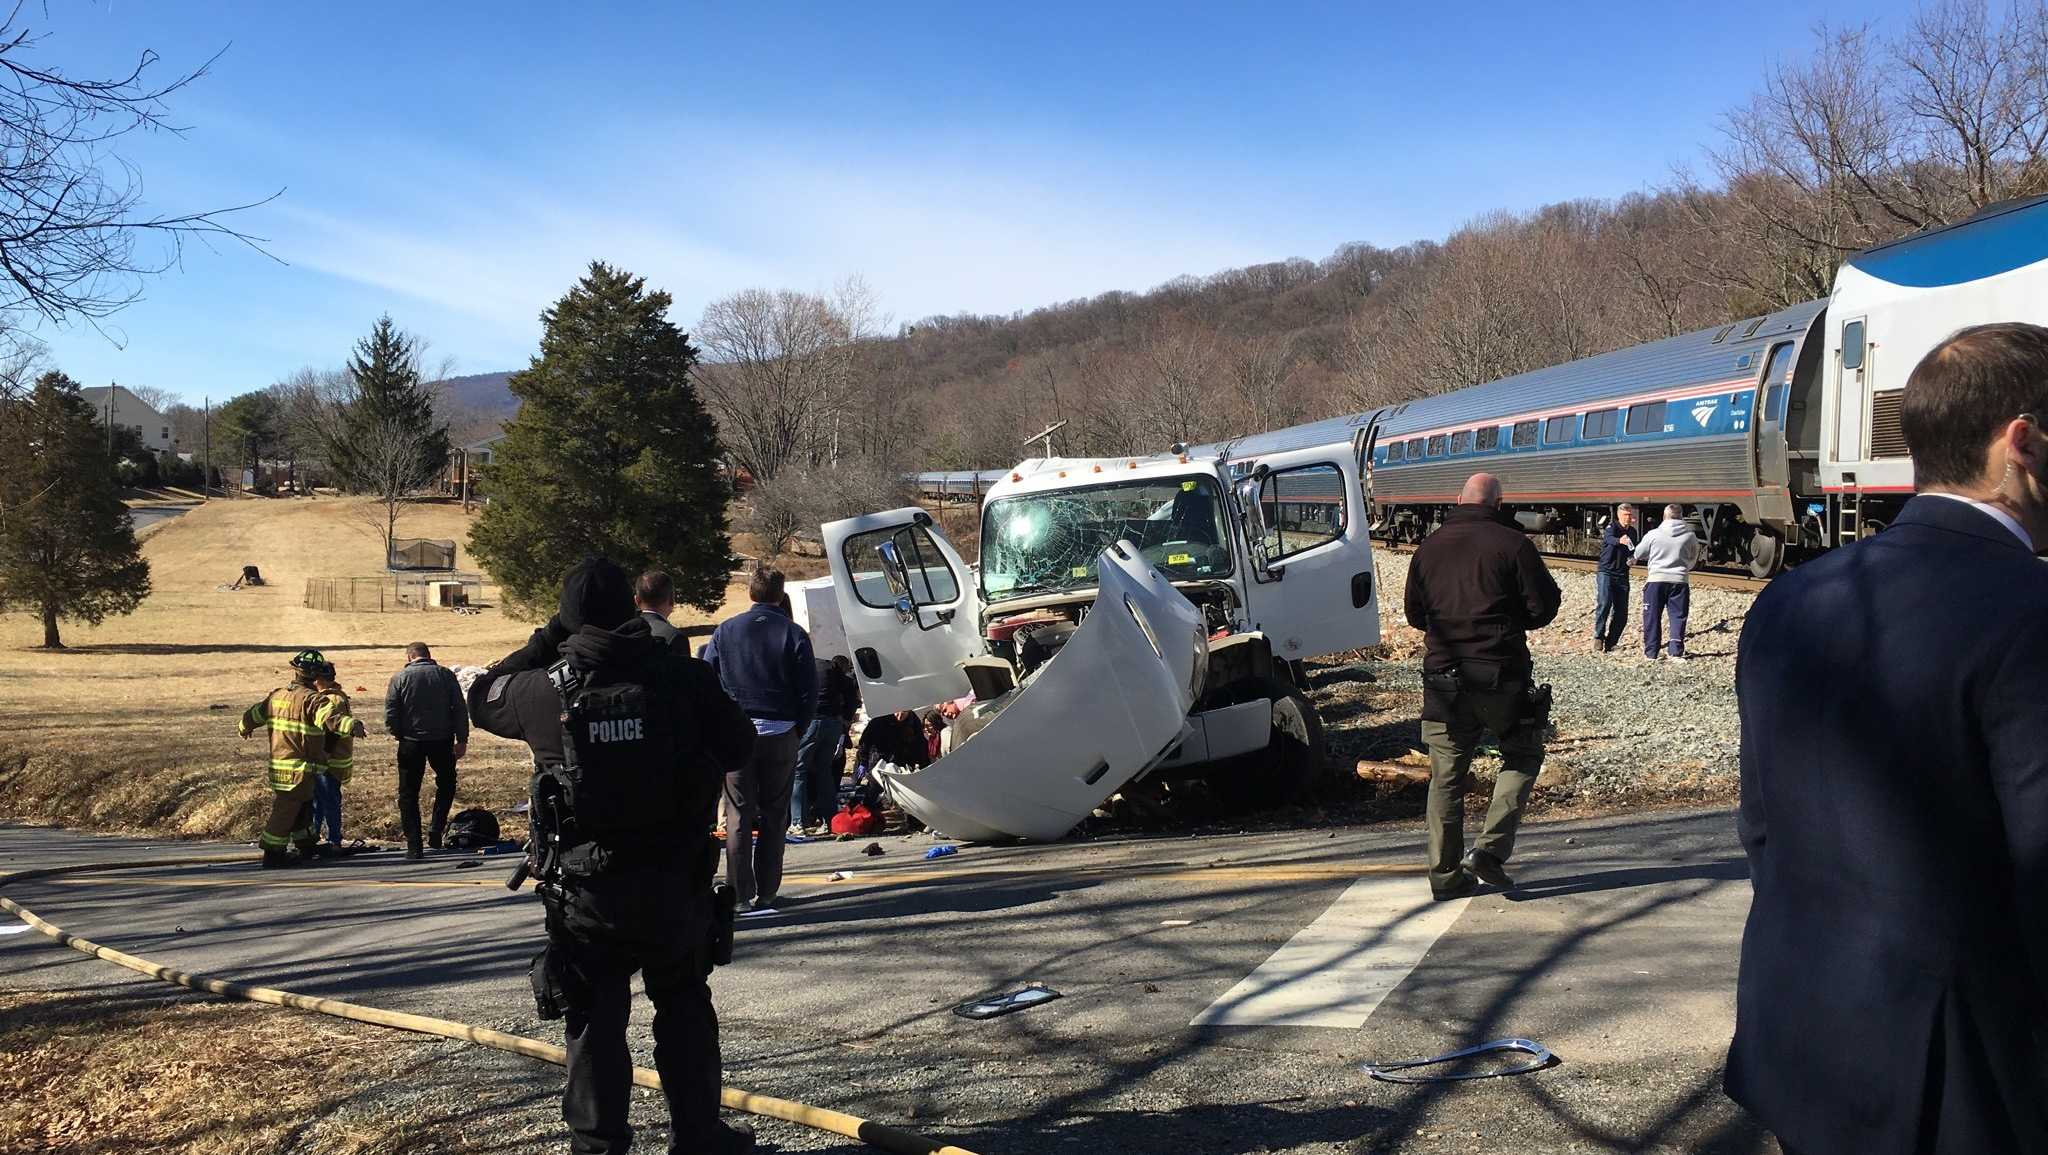 The scene of an accident involving a truck and a train carrying GOP members of Congress in Virginia on Jan. 31, 2018.